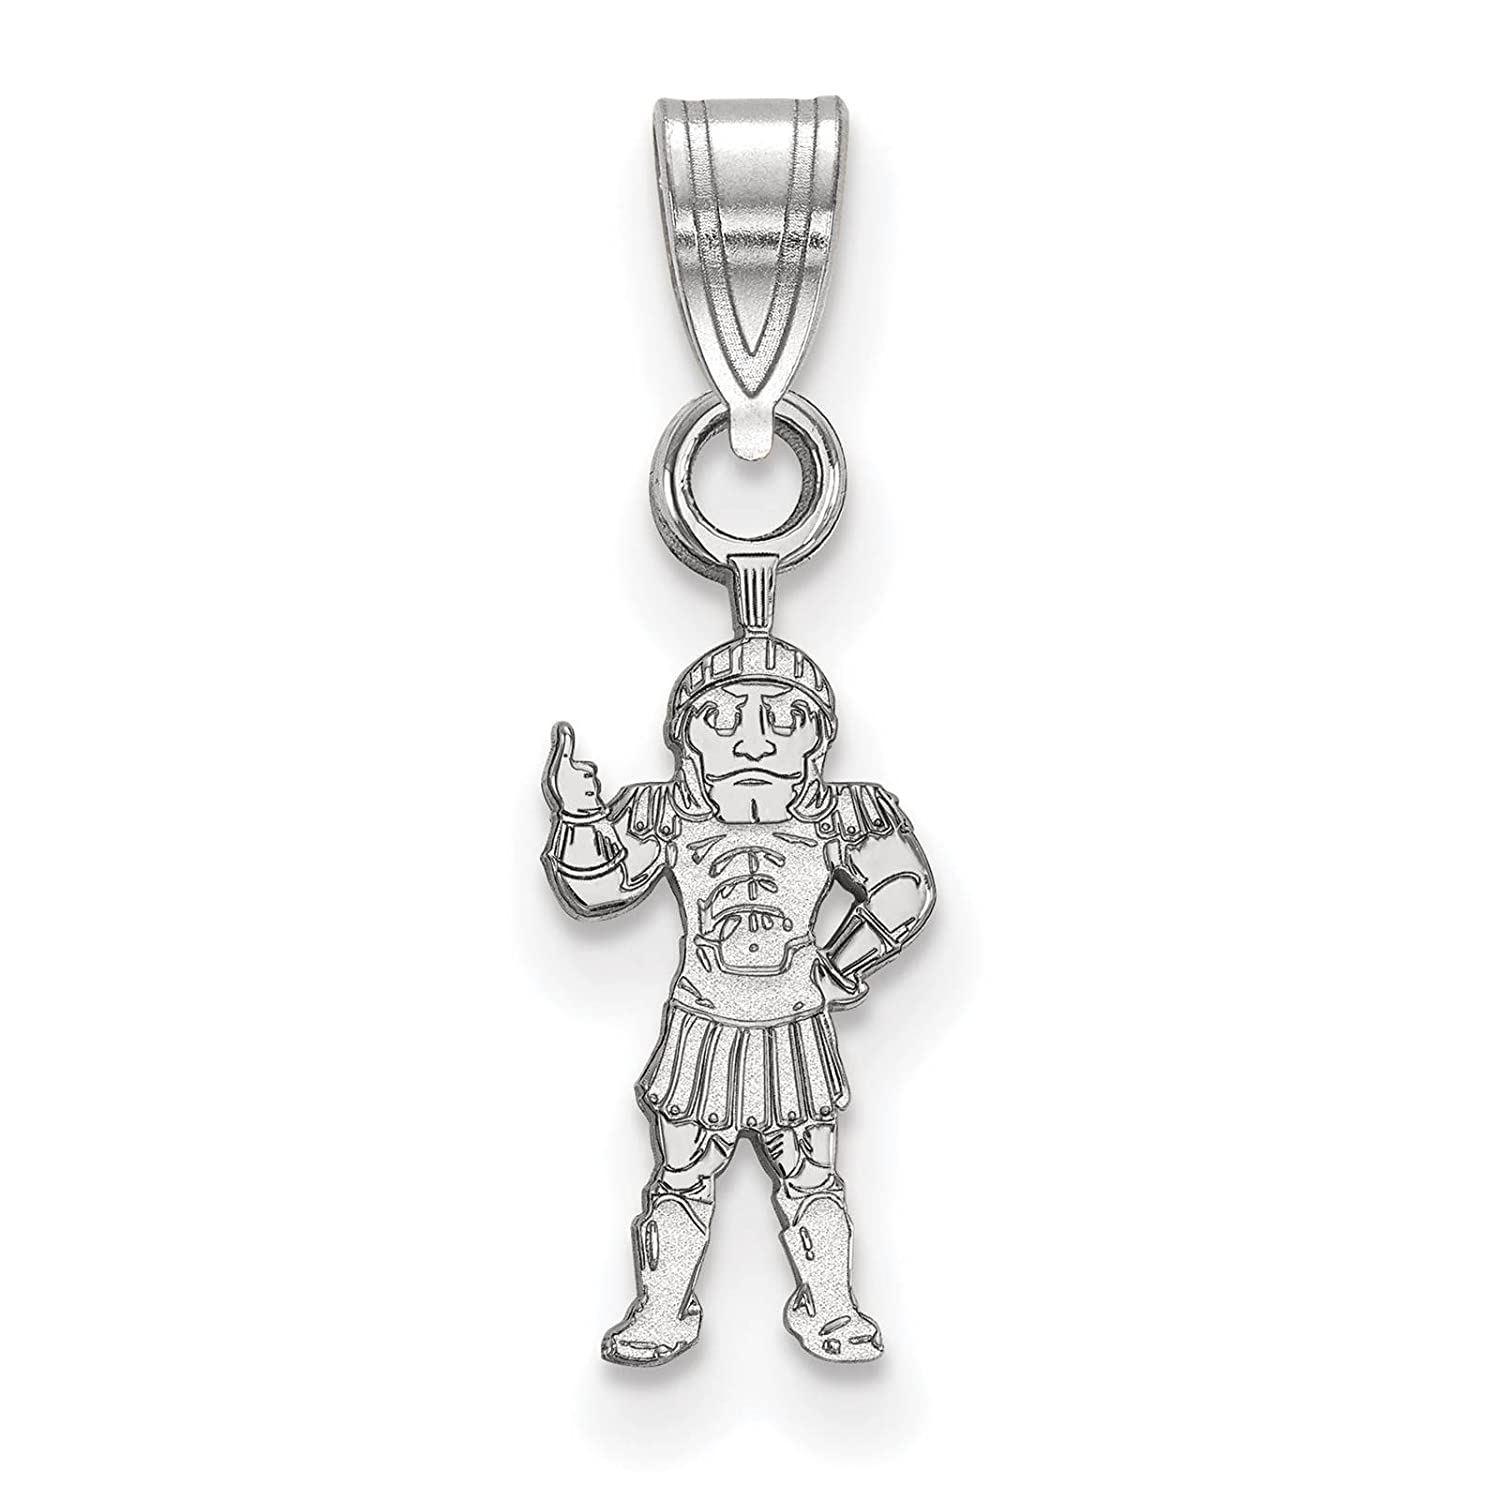 925 Sterling Silver Rhodium-plated Laser-cut Michigan State University Small Pendant